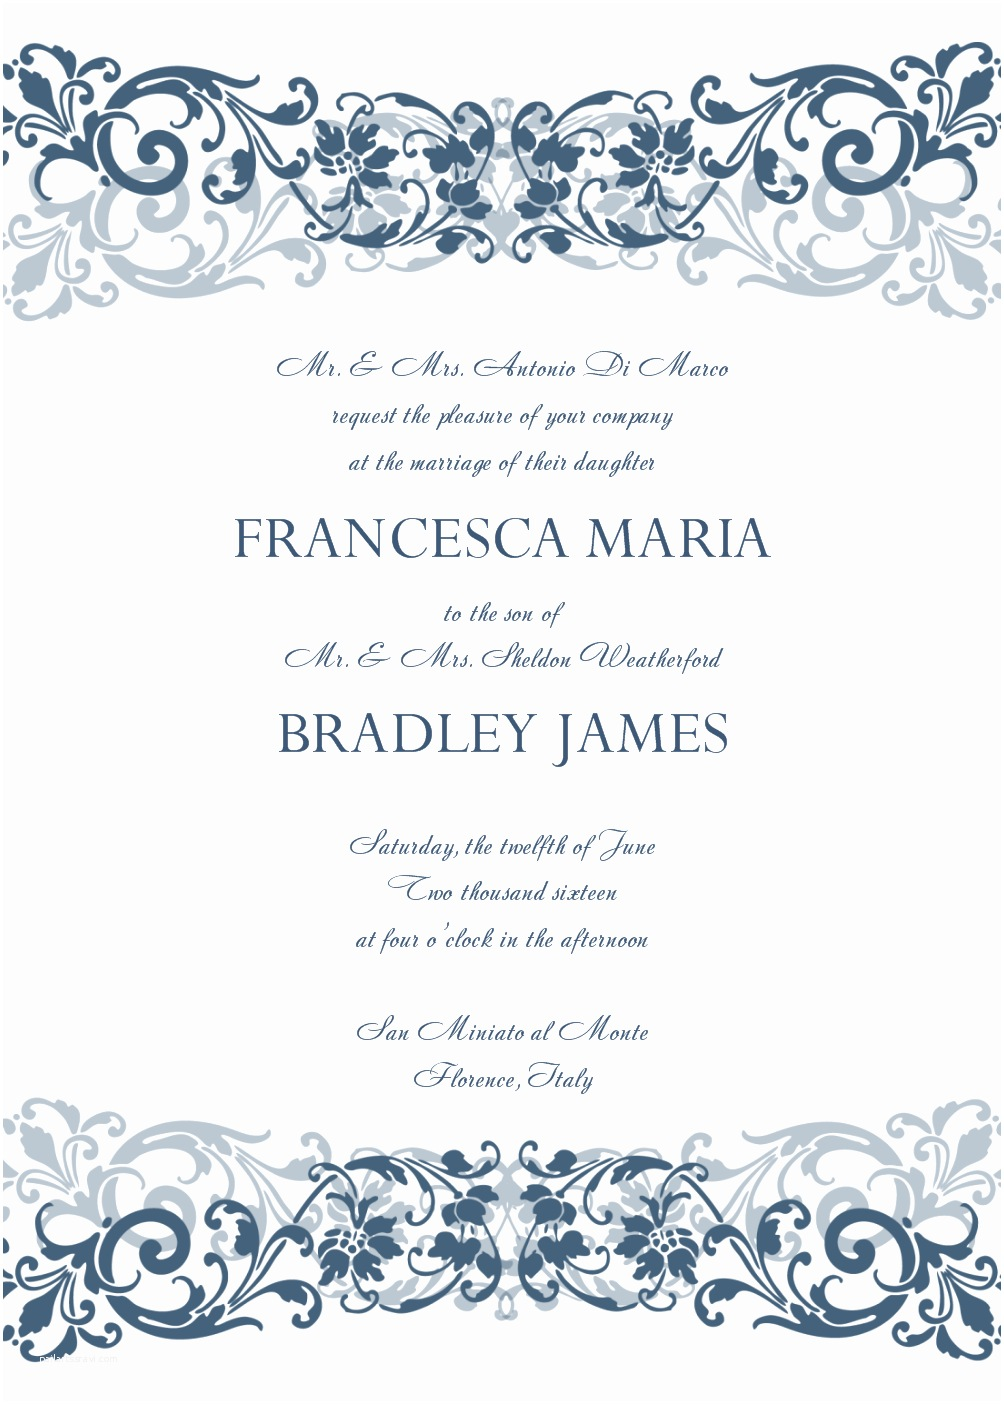 Wedding Invite Directions Template 8 Microsoft Word Wedding Invitation Templates